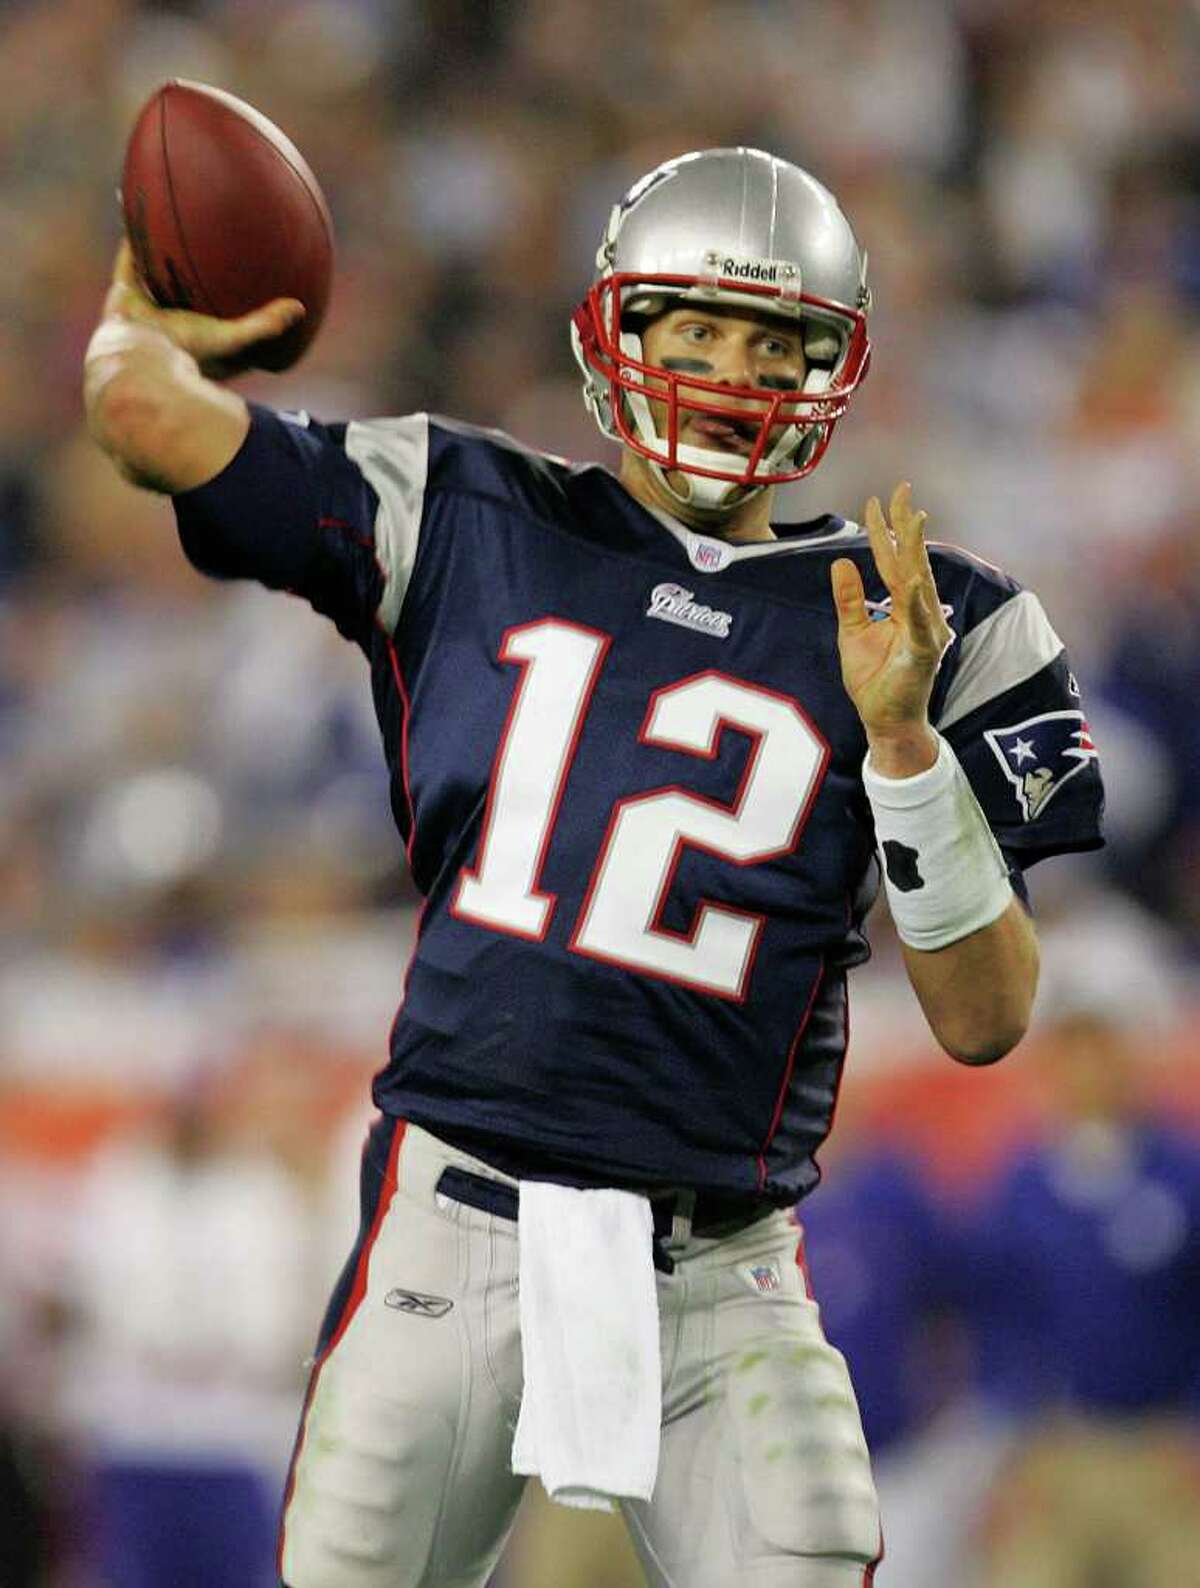 Tom Brady (1): He is the most recognized player in the NFL right now. And he scored off the field, too. See the next slide. And another later.